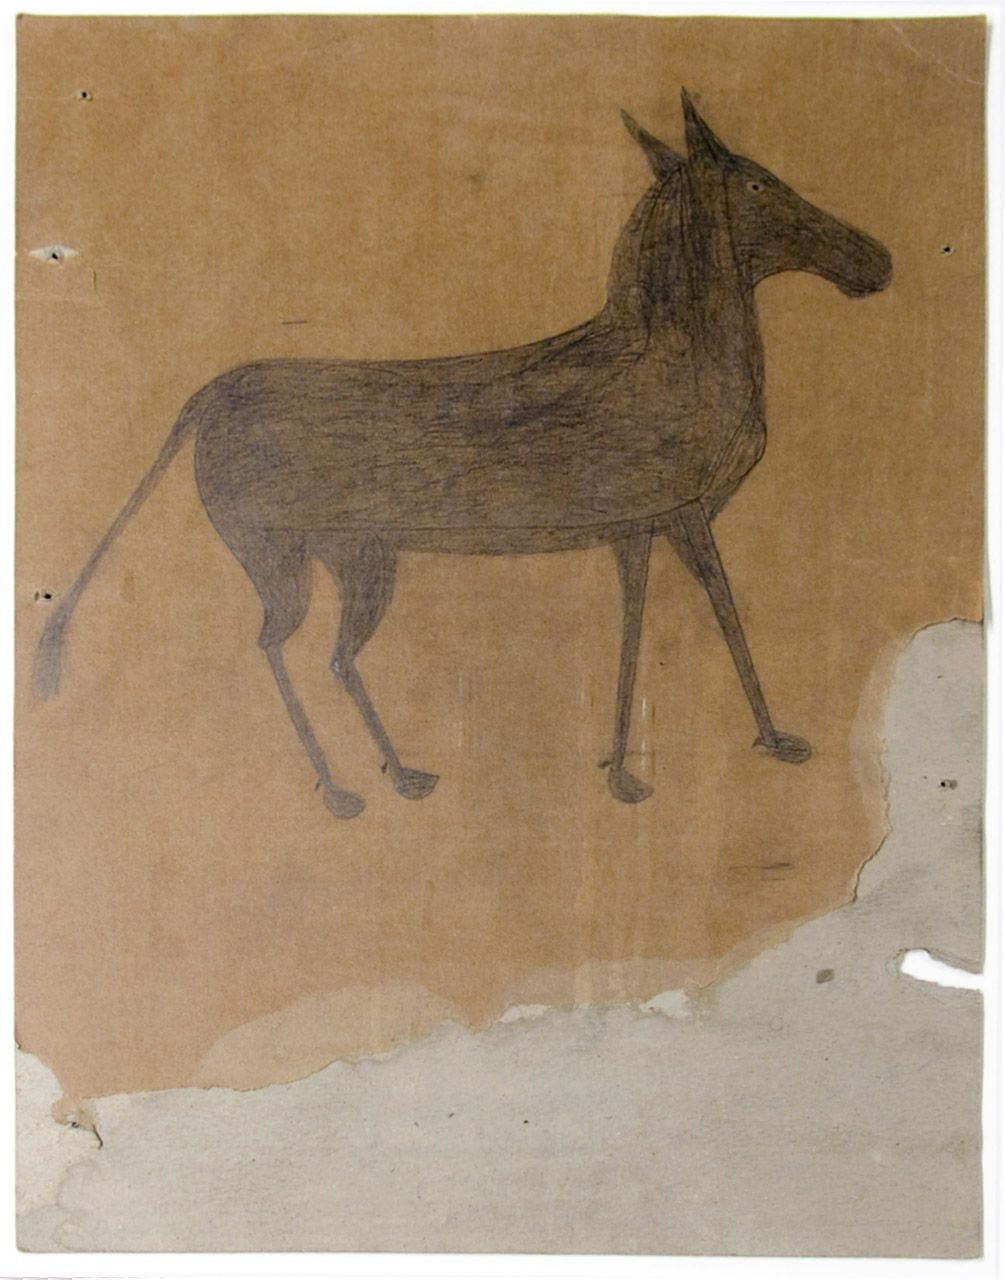 Startled Young Mule, c. 1939-1942, Pencil and Crayon on Paper on Cardboard